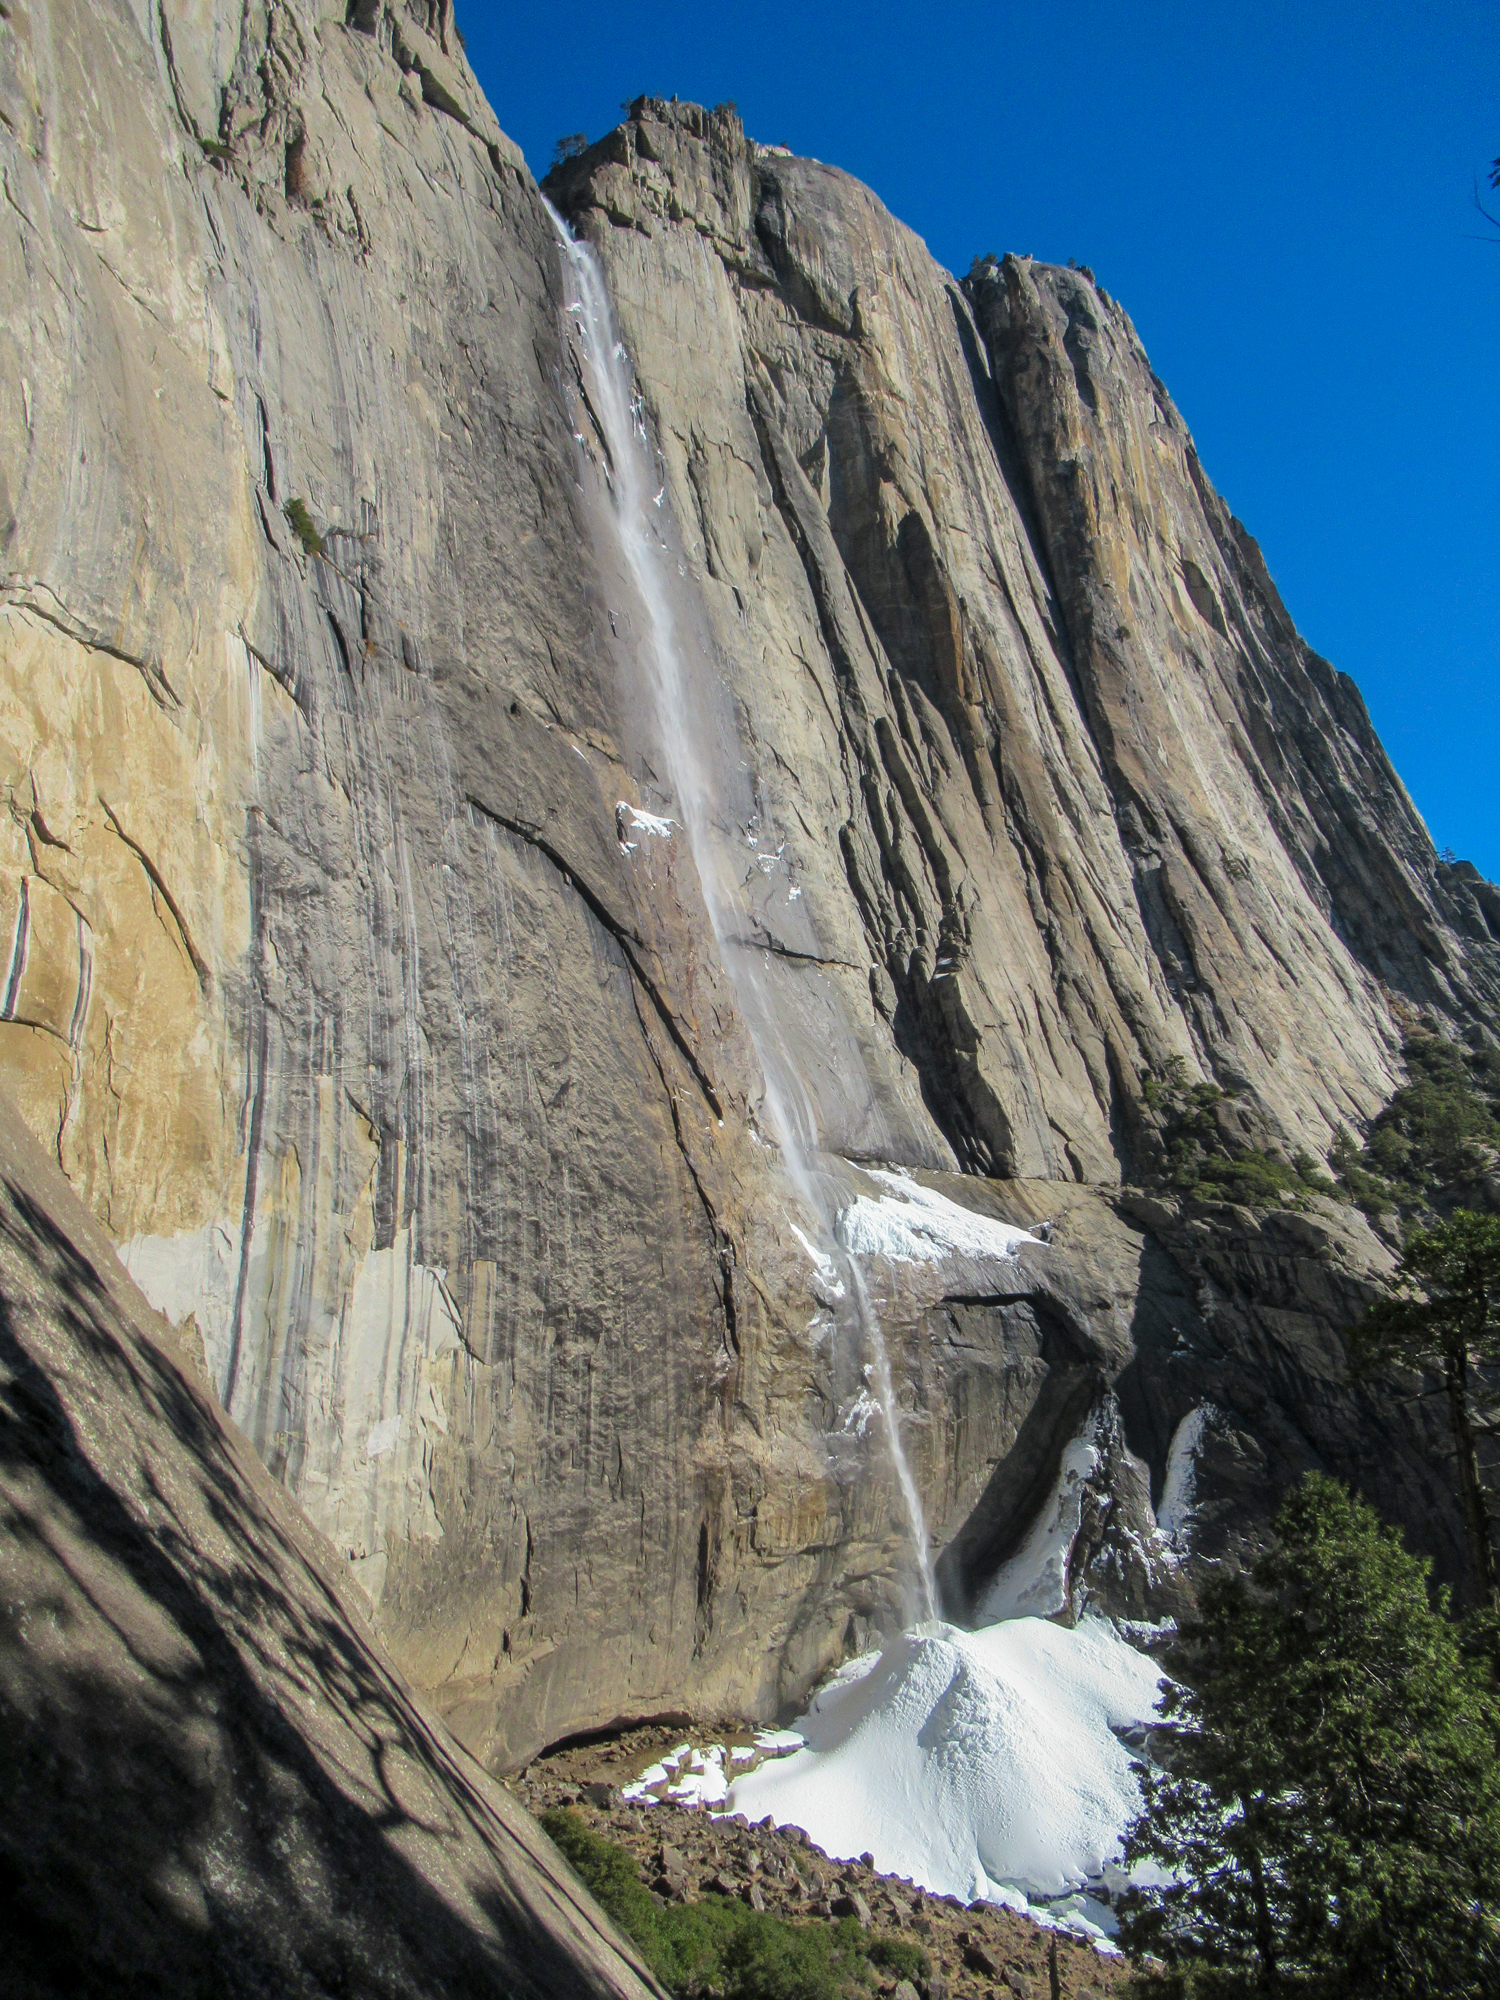 Water trickles over the edge of yosemite Falls.